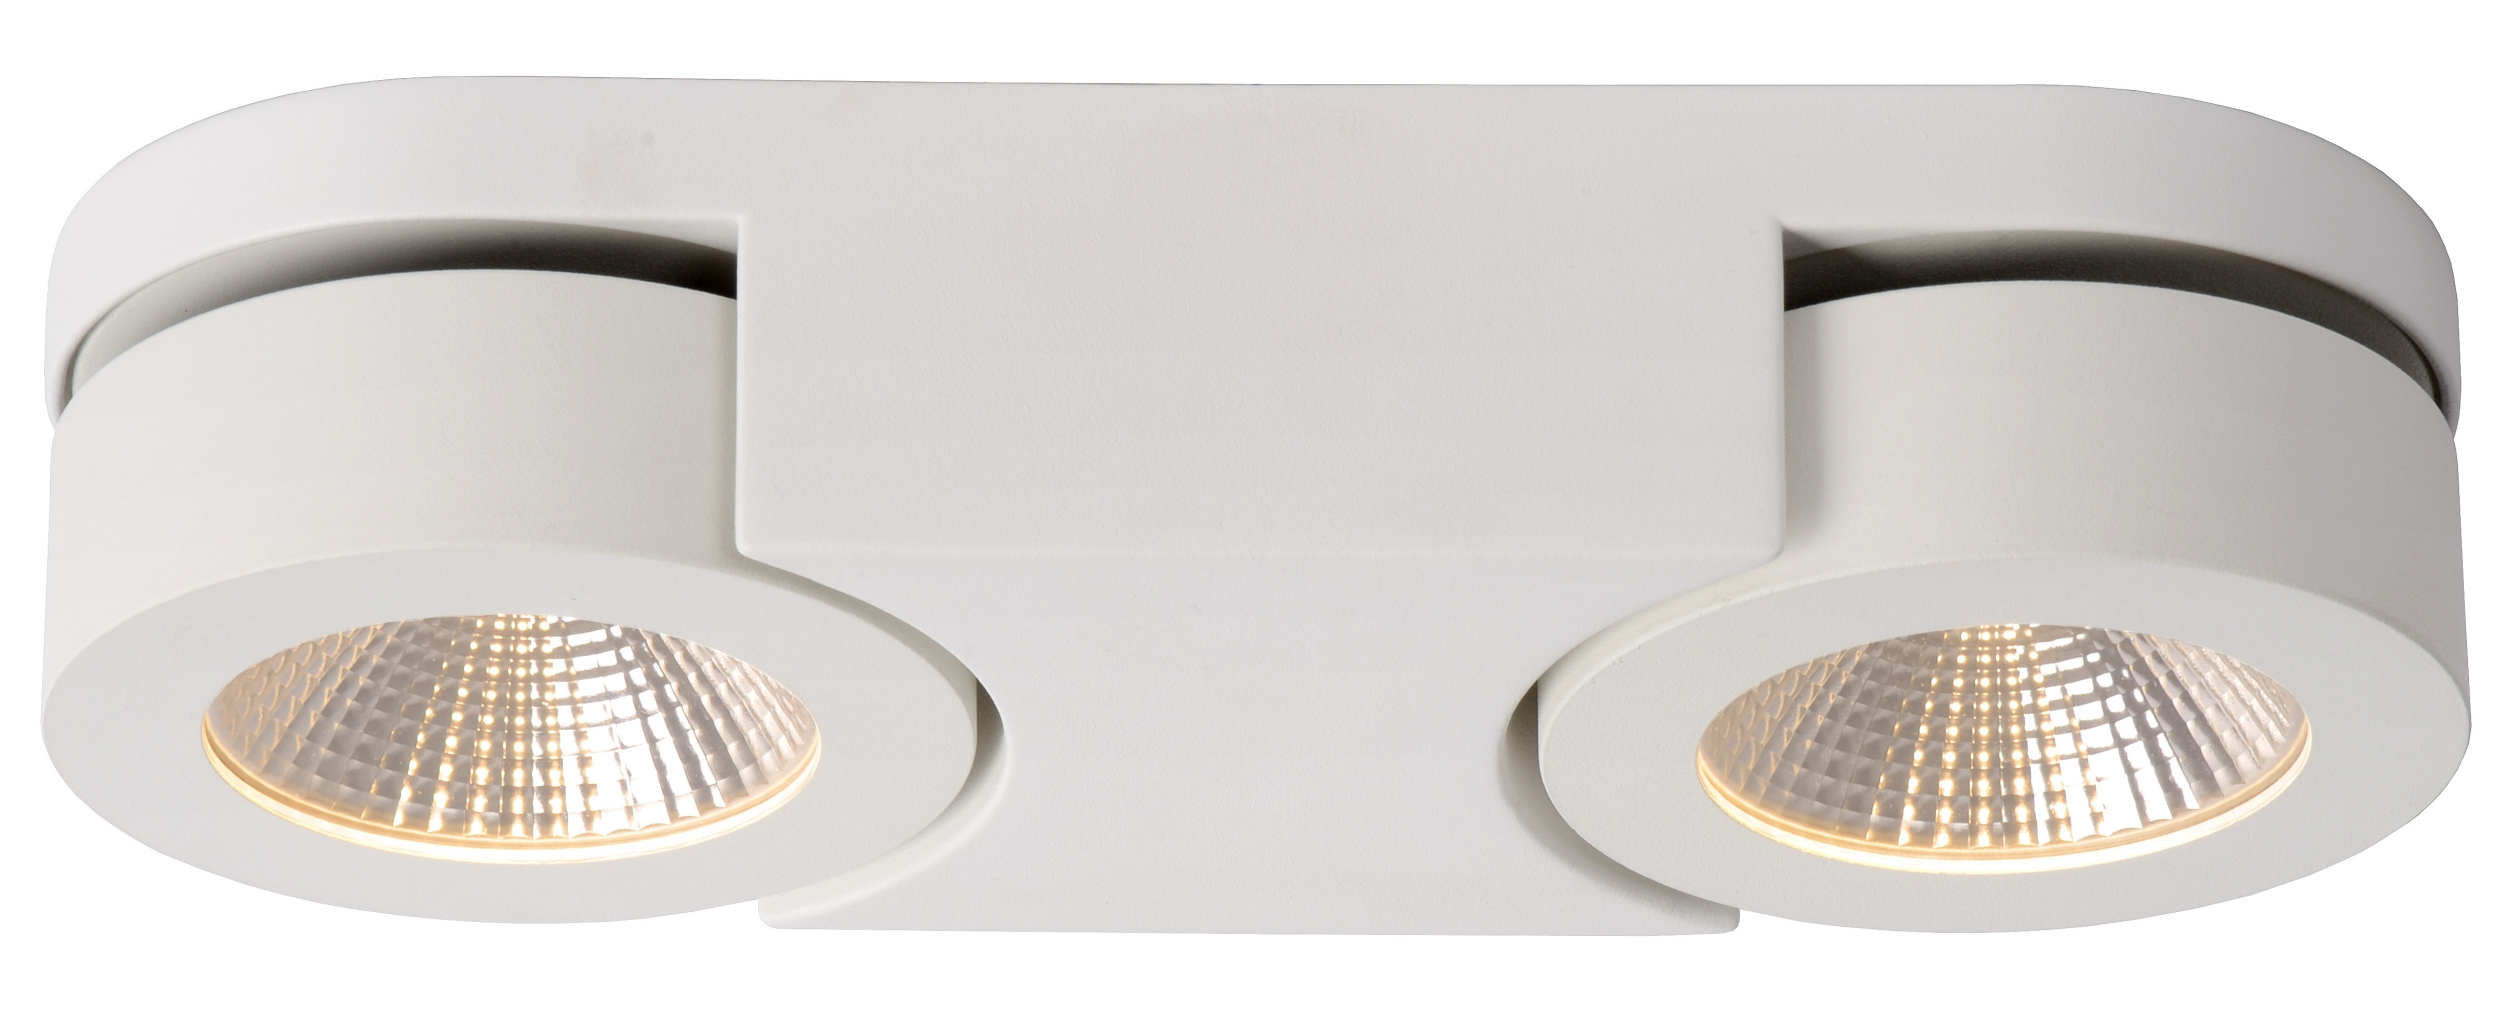 Lucide Plafondspot Mitrax 2 Lichts - Dimbare LED - Mat Wit